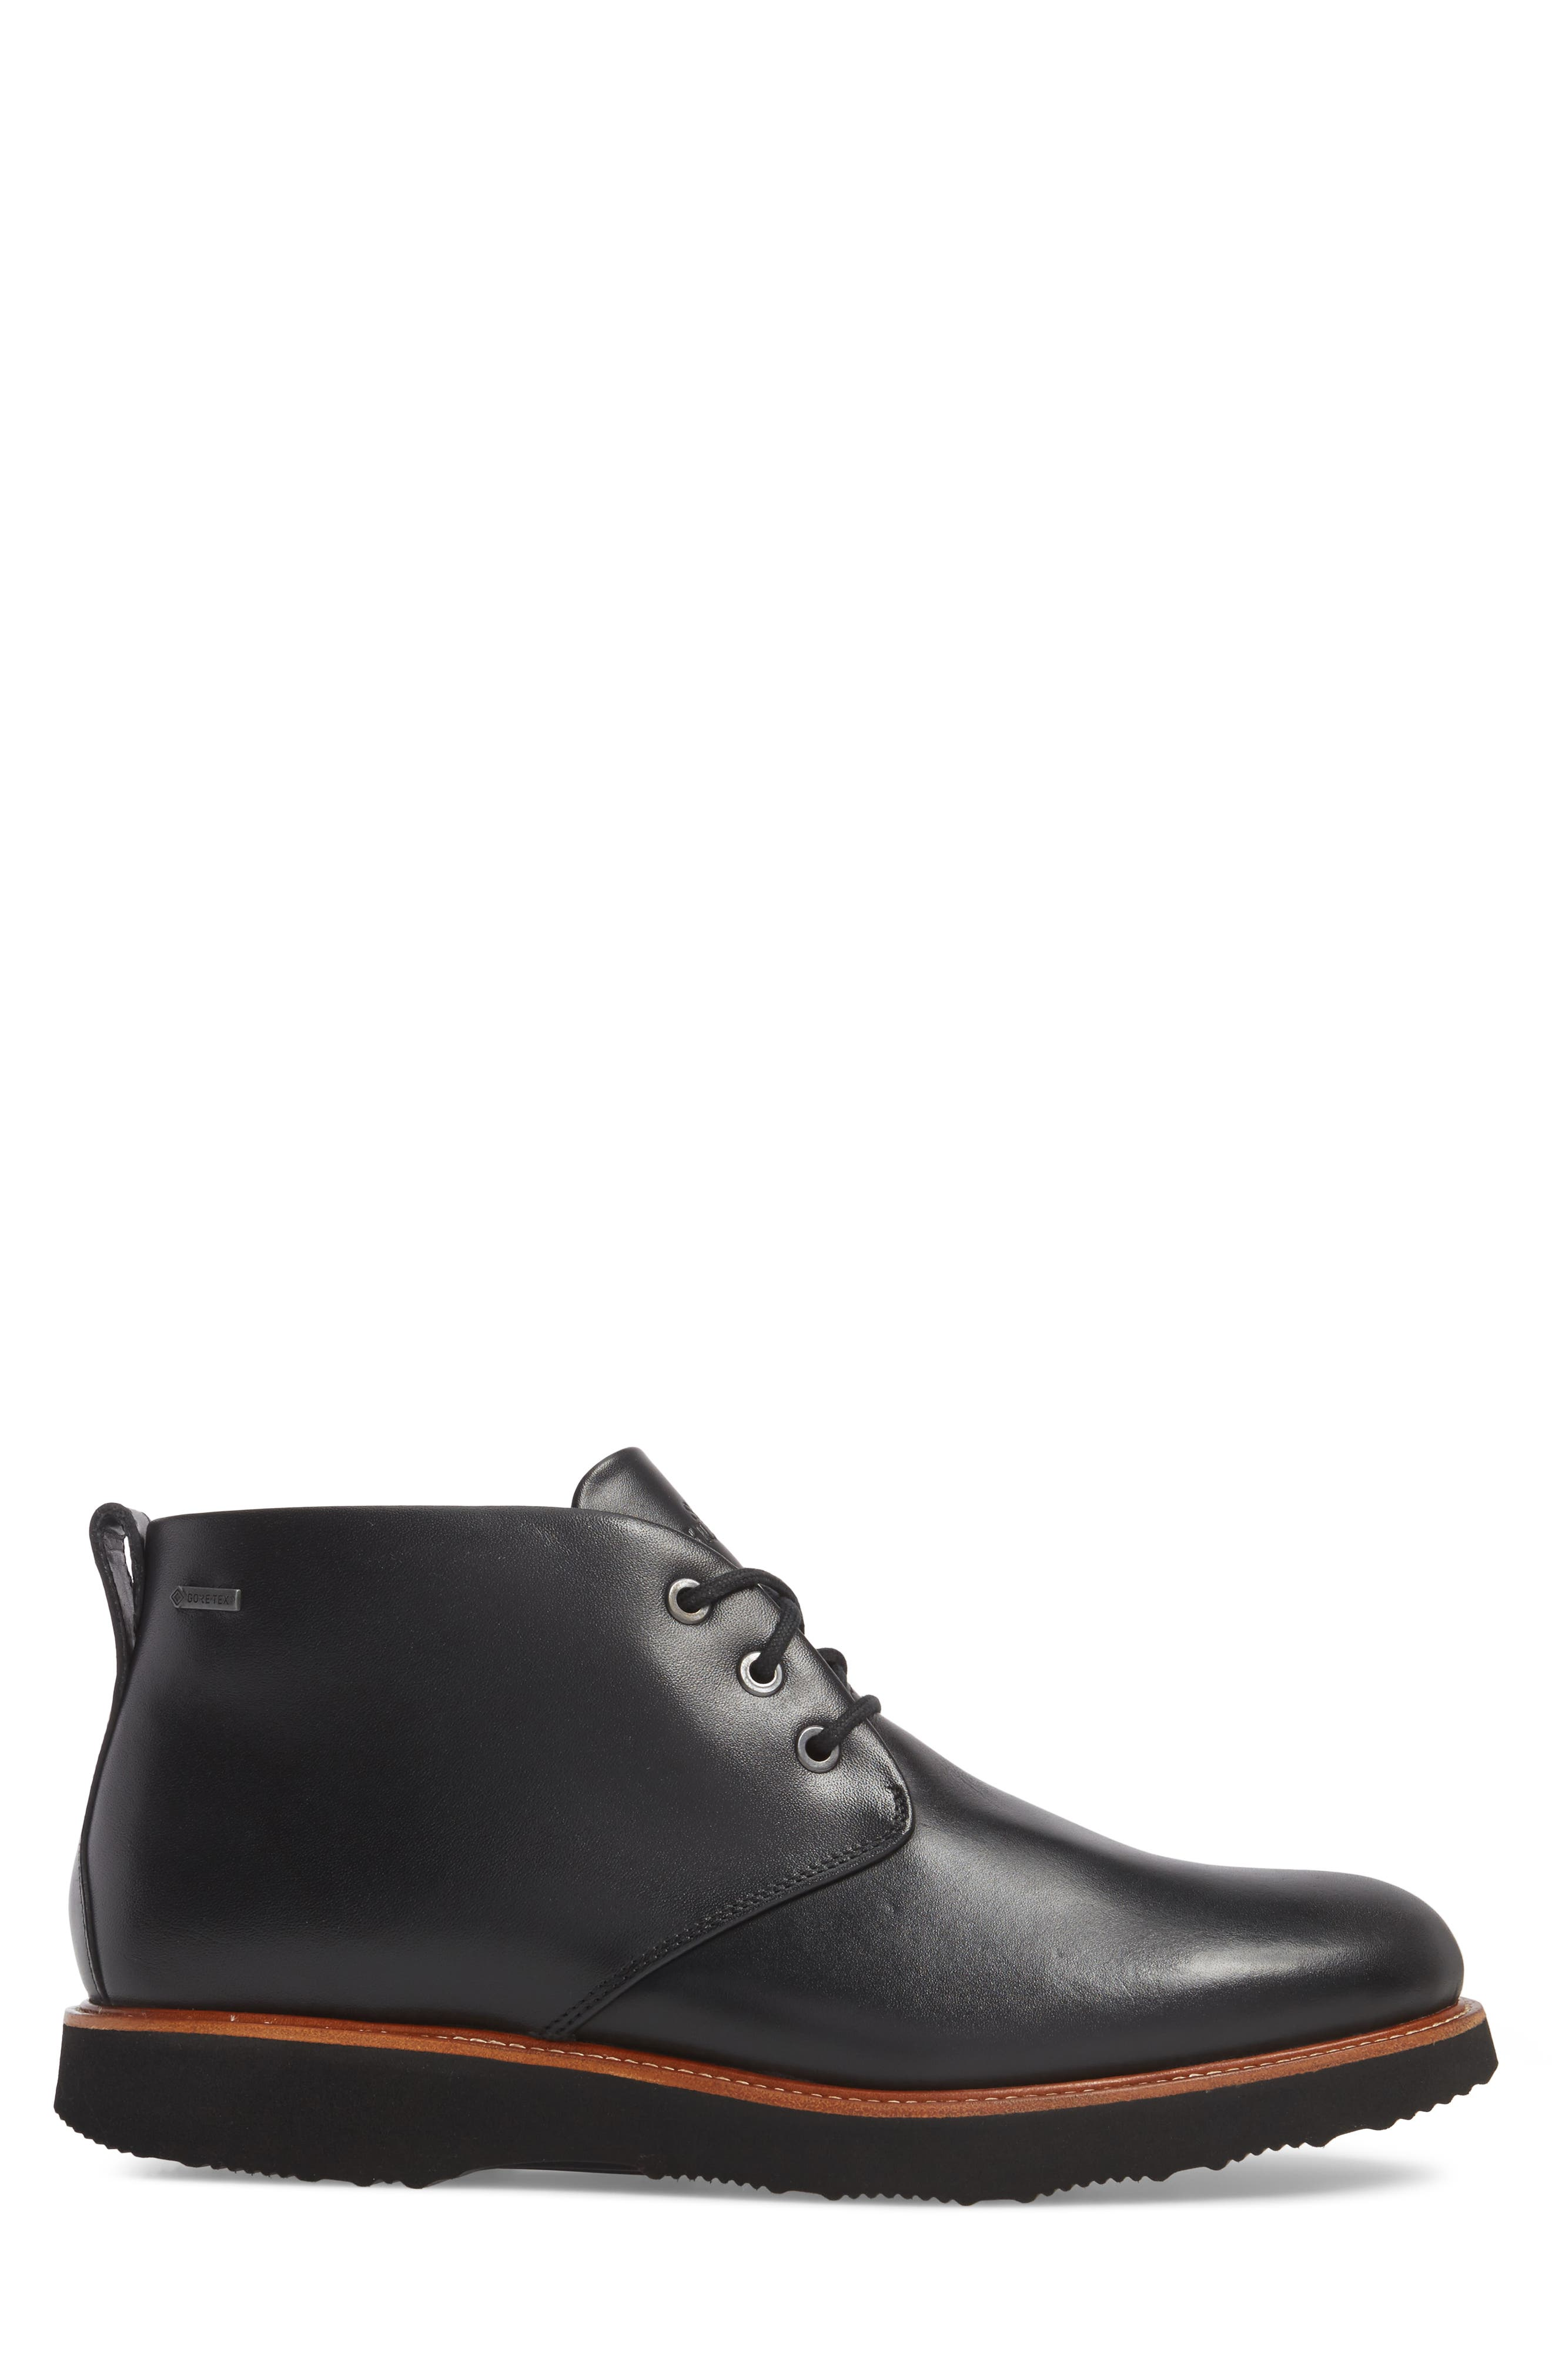 Alternate Image 3  - Samuel Hubbard Re-Boot Waterproof Gore-Tex® Chukka Boot (Men)